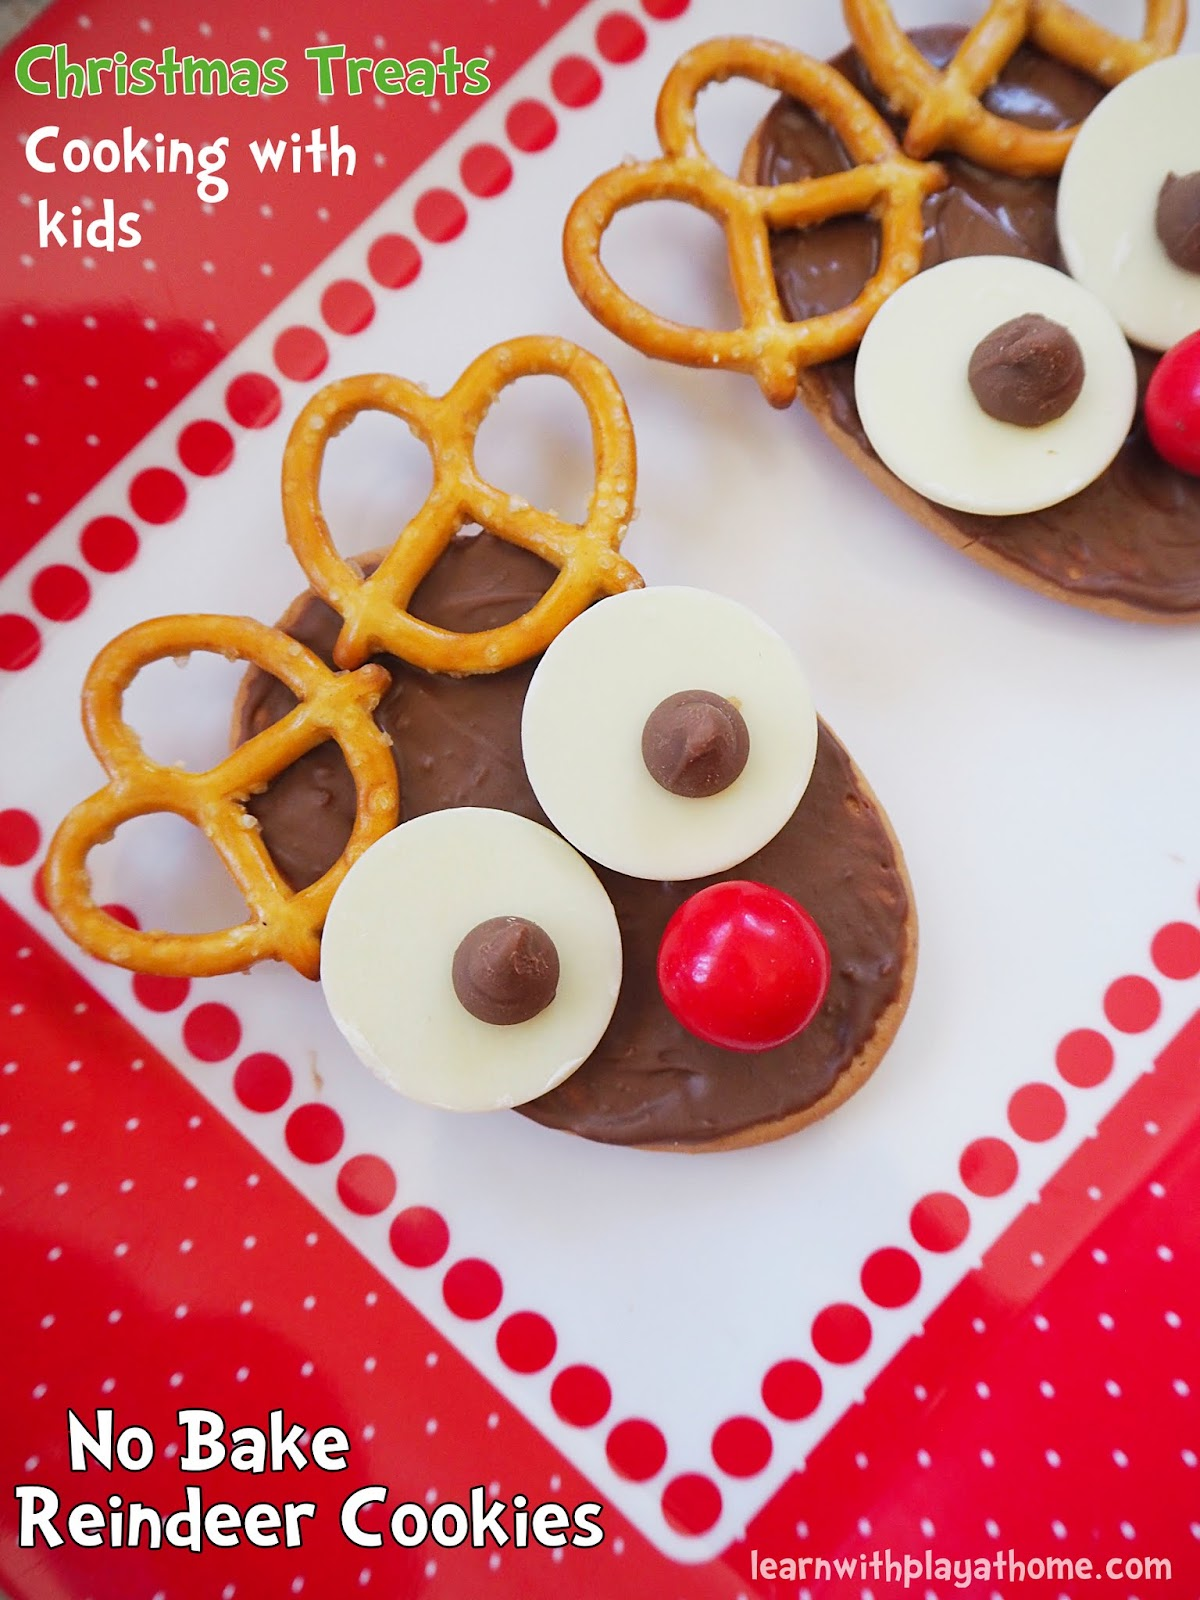 These no-cook kids recipes are a great way to get young children involved in the kitchen while keeping them away from the hot stove.